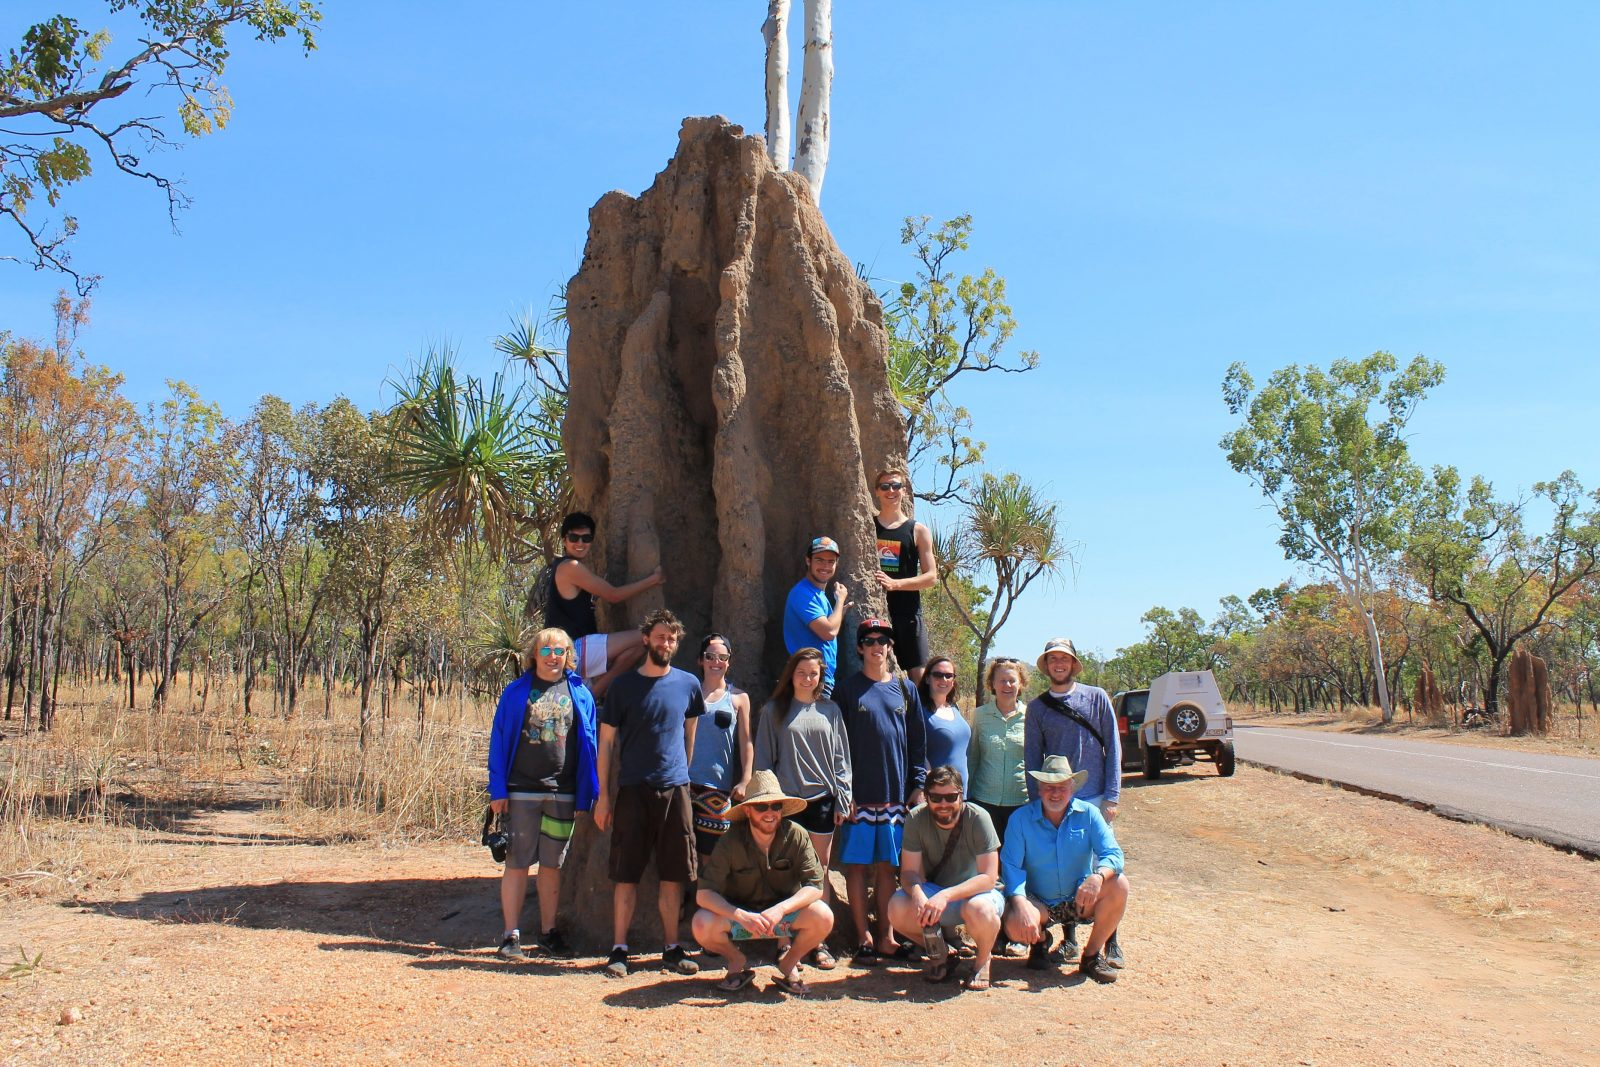 Group of people posing with a huge cathedral termite mound